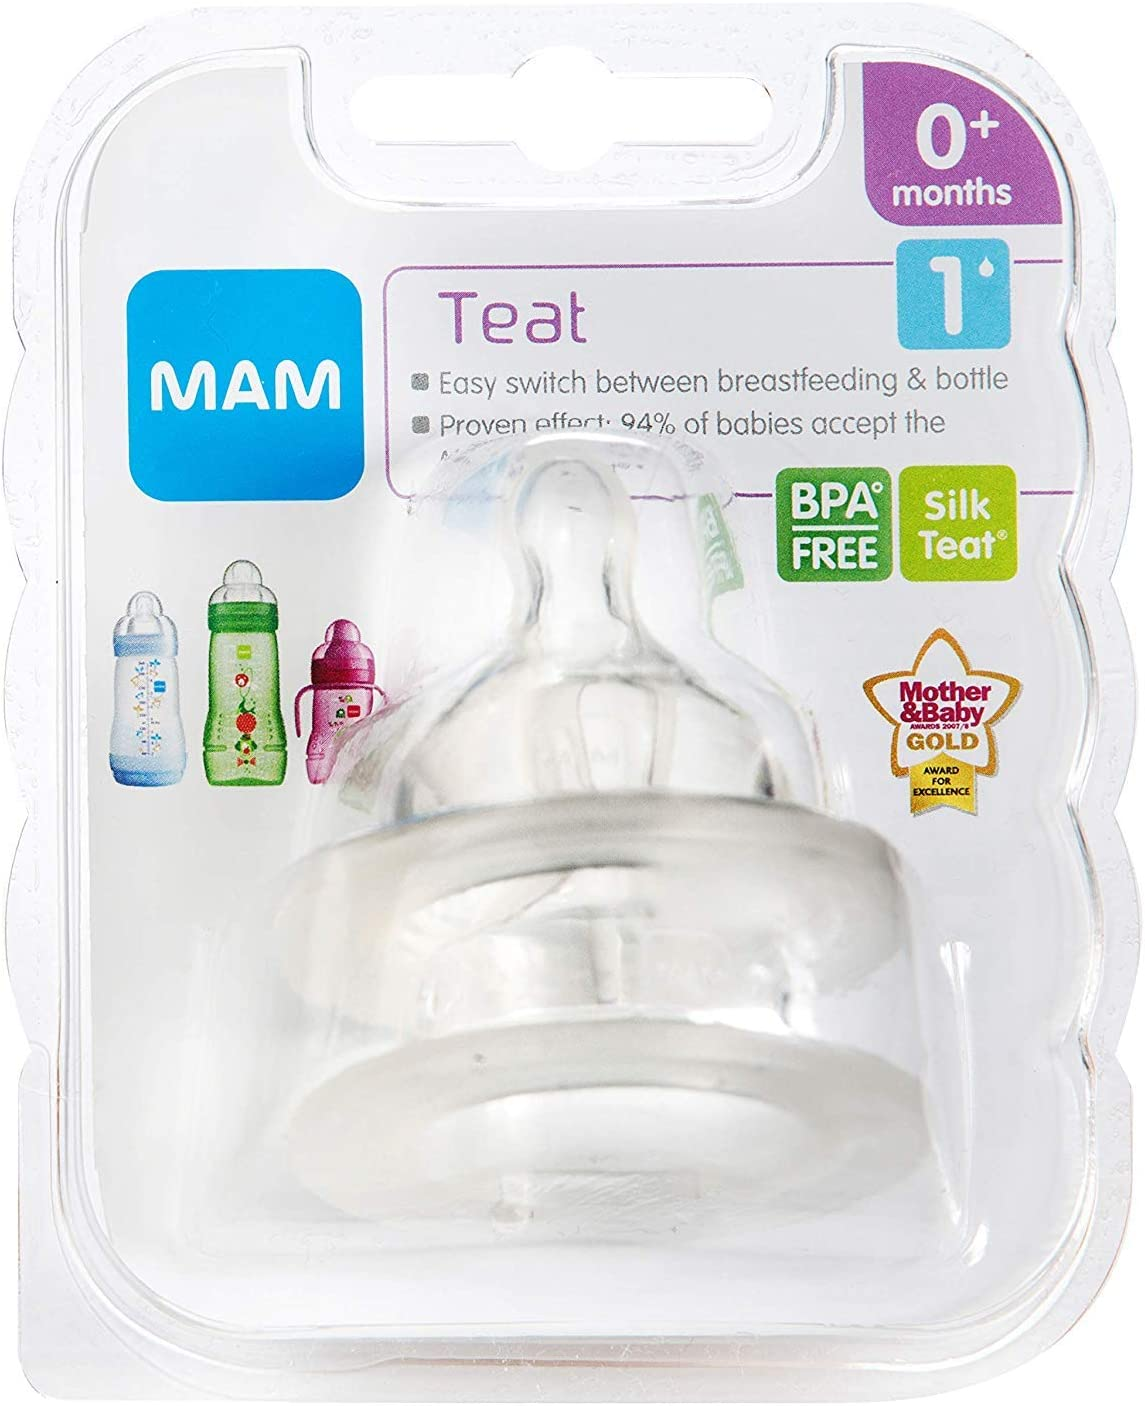 Fits all MAM Baby Bottles Suitable for 6+ Months MAM Cross-Cut Teats Pack of 2 Baby Feeding Essentials Bottle Teats with SkinSoft Silicone